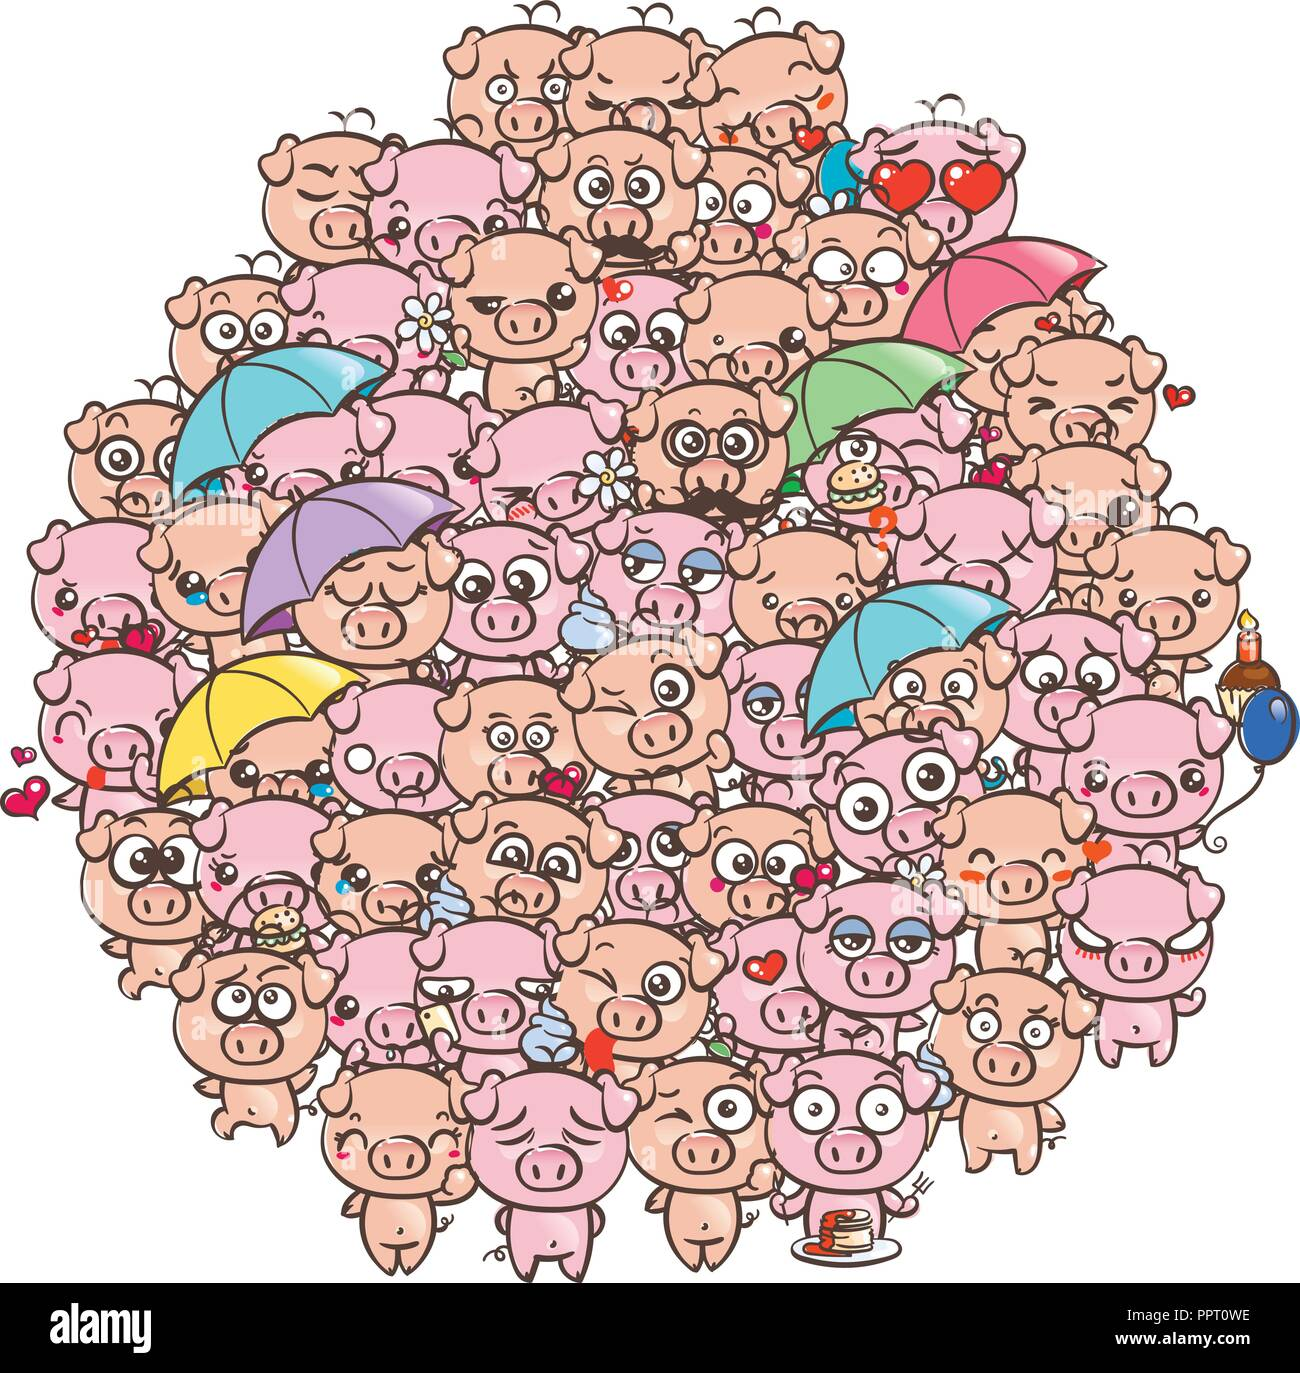 Background with cute baby piglets  Pastel cartoon image kawaii pigs